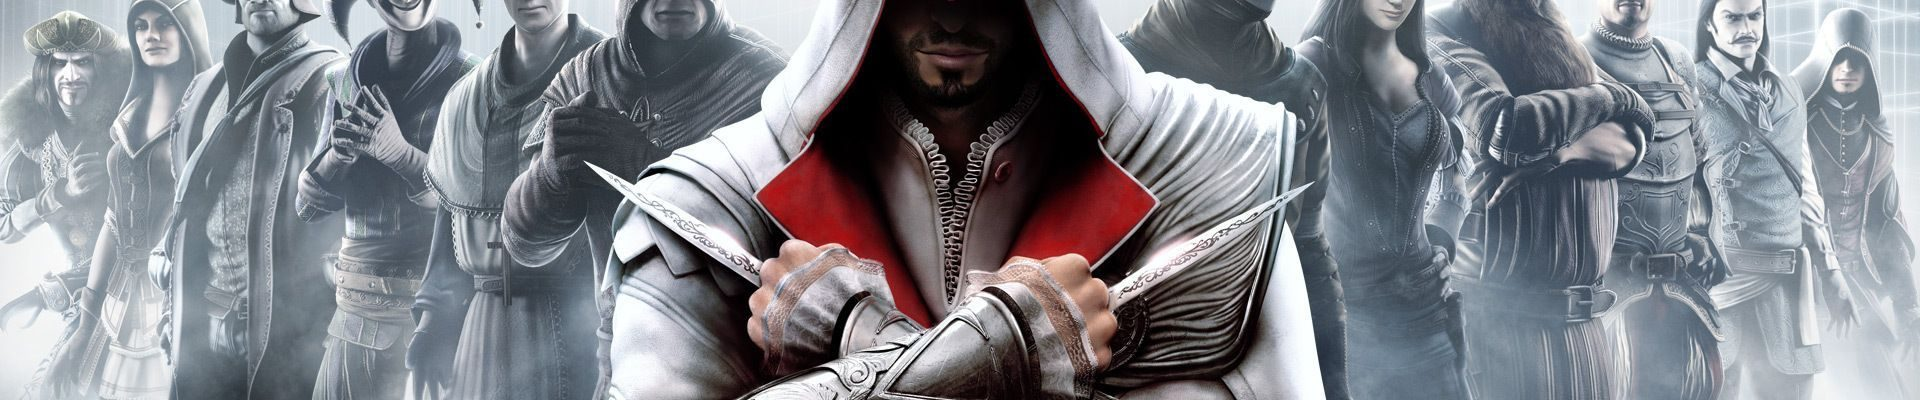 Assassin's Creed vai virar série na Netflix